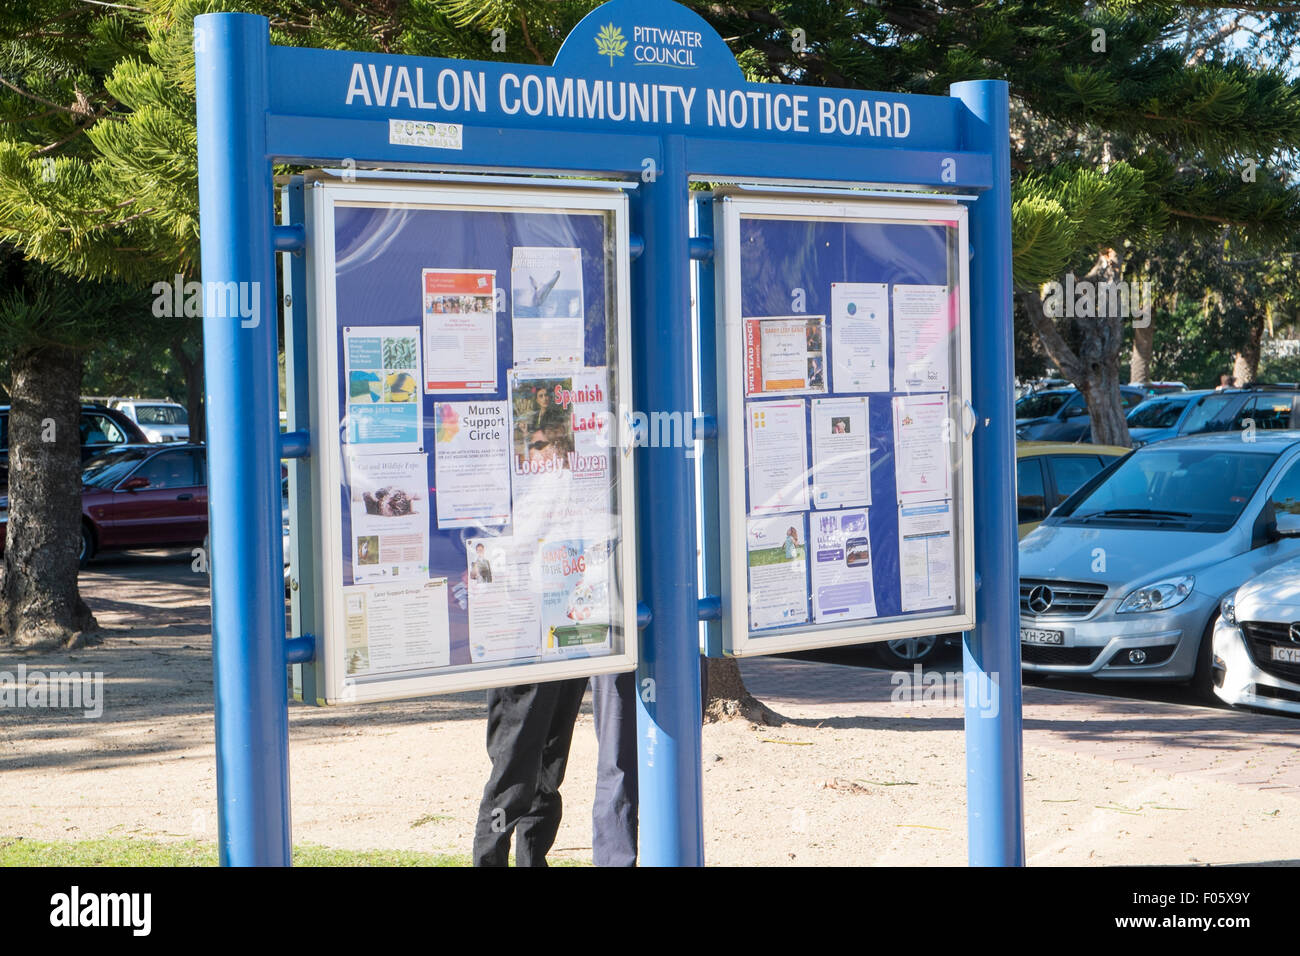 Avalon community notice board in the suburb of Avalon on sydney's northern beaches,New South Wales,Australia - Stock Image